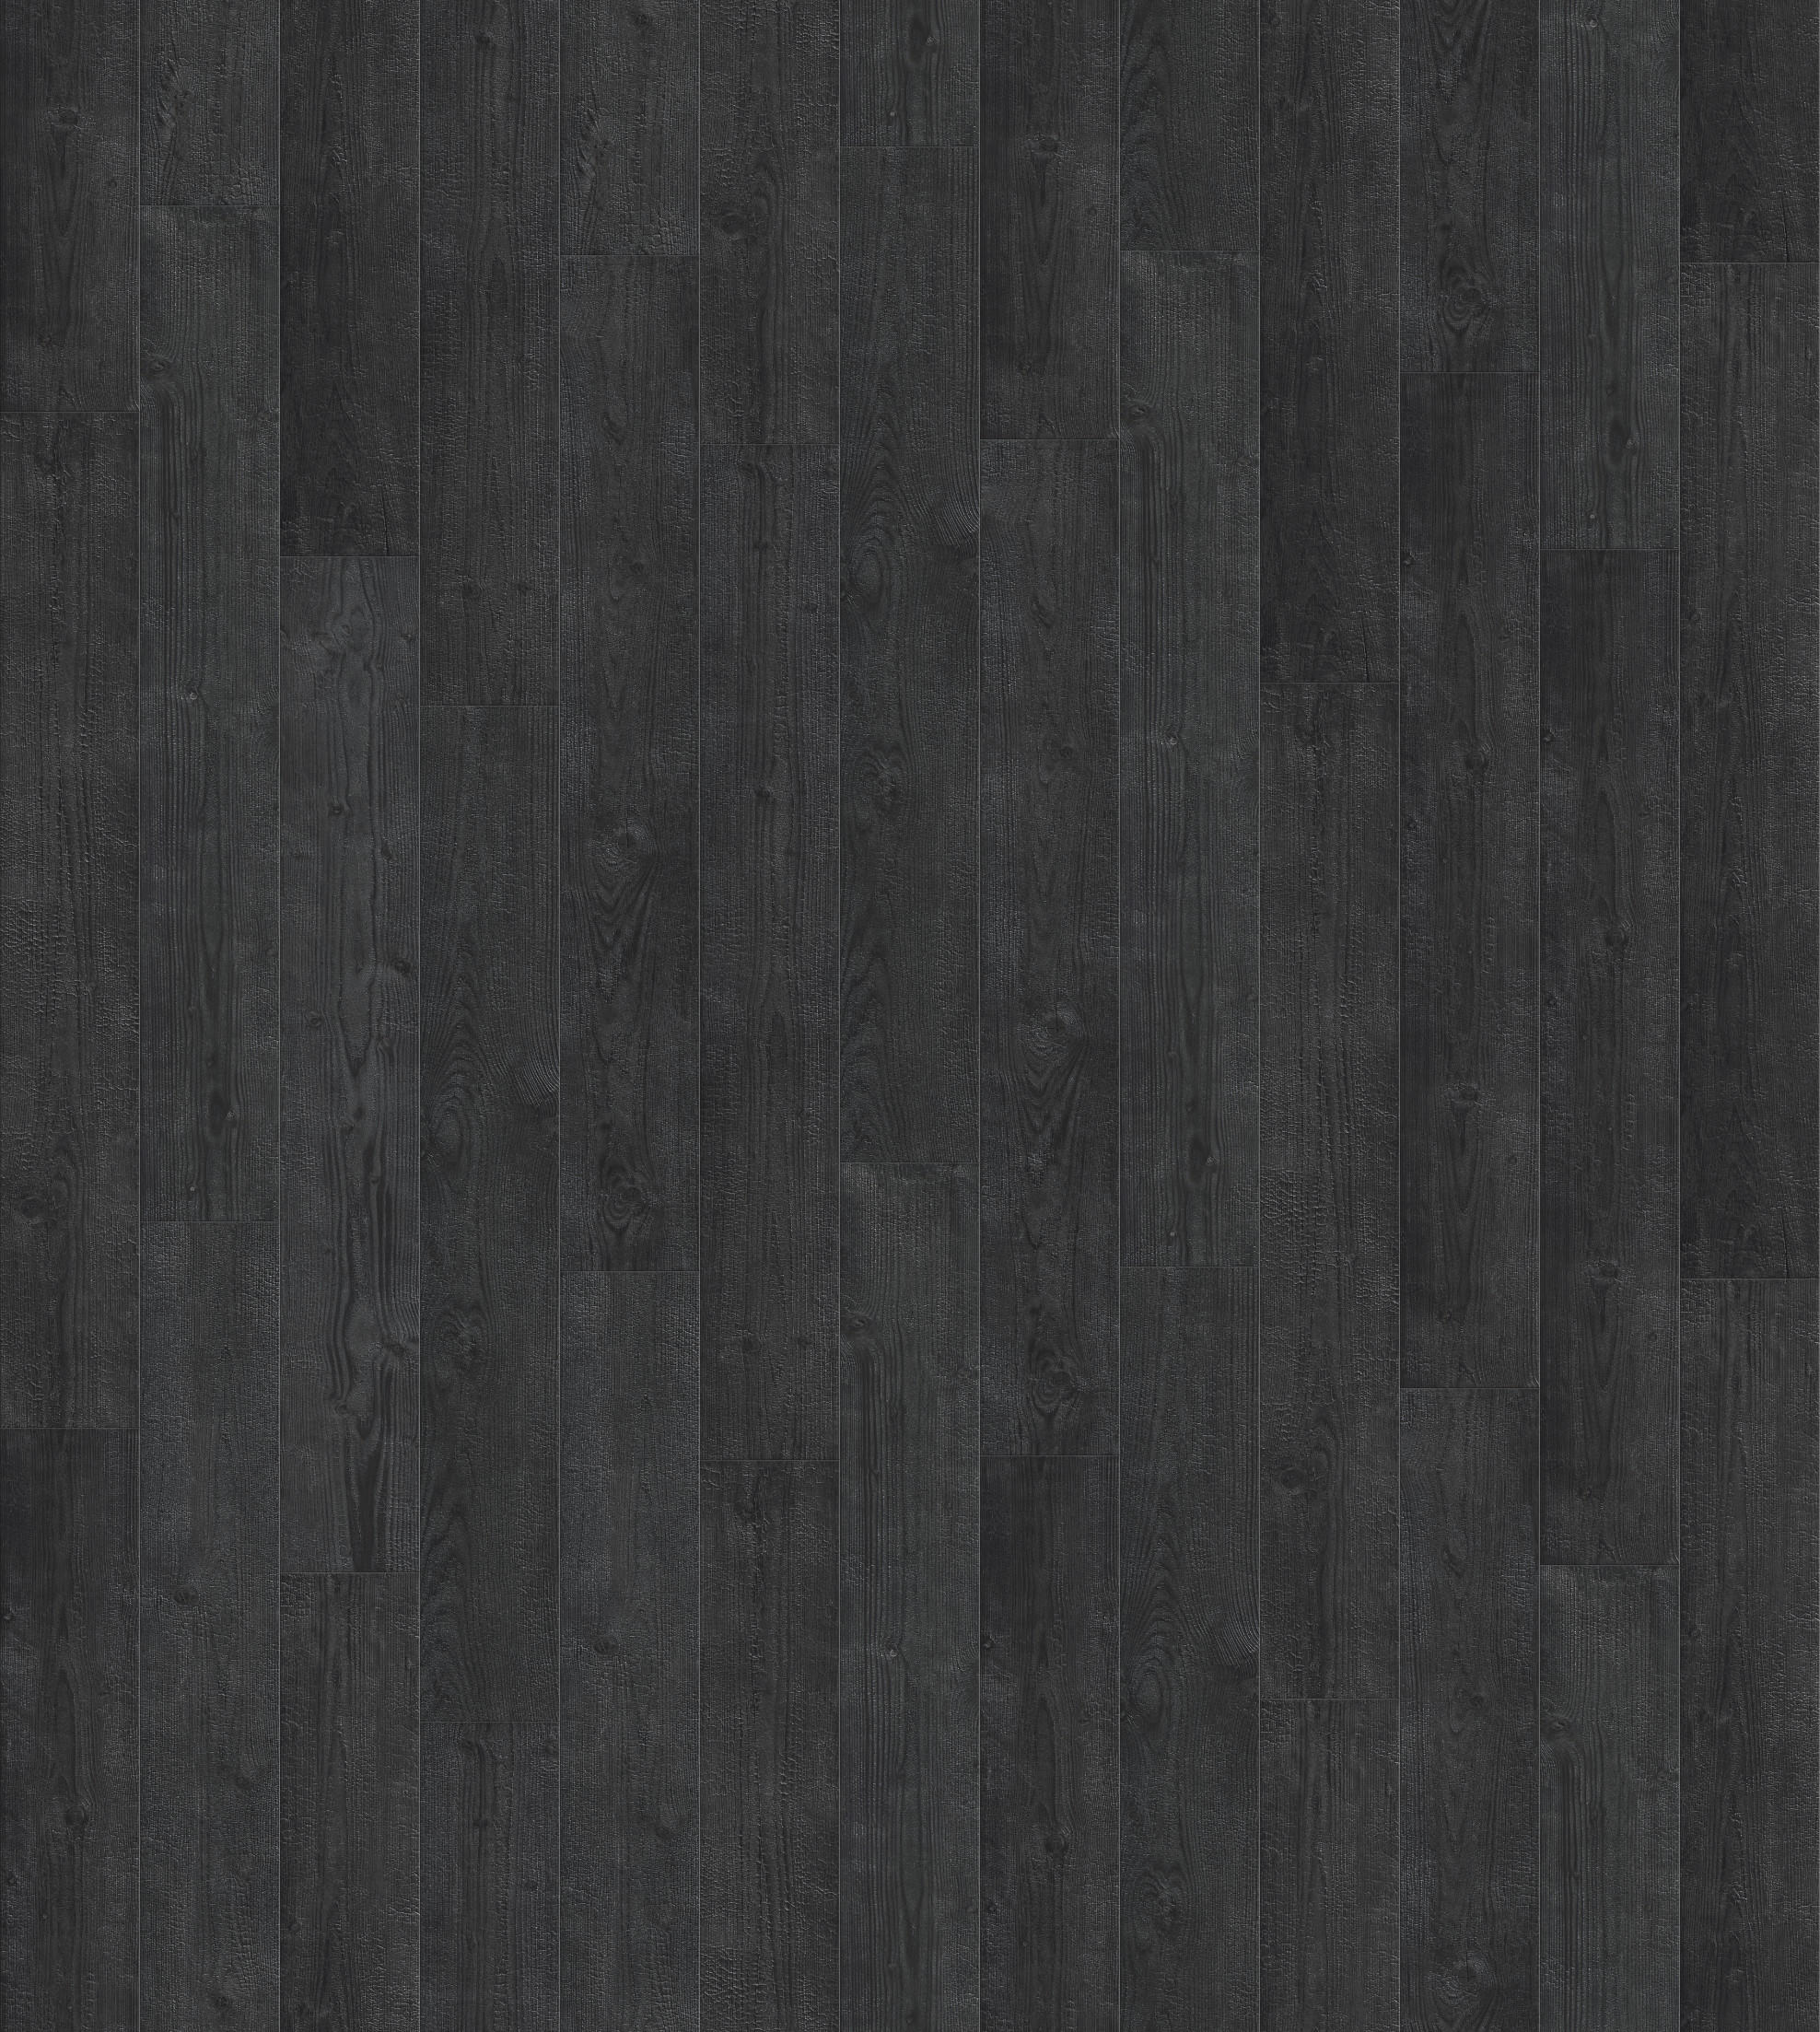 Quick-Step Impressive Burned Planks IM1862 8mm Laminate Flooring